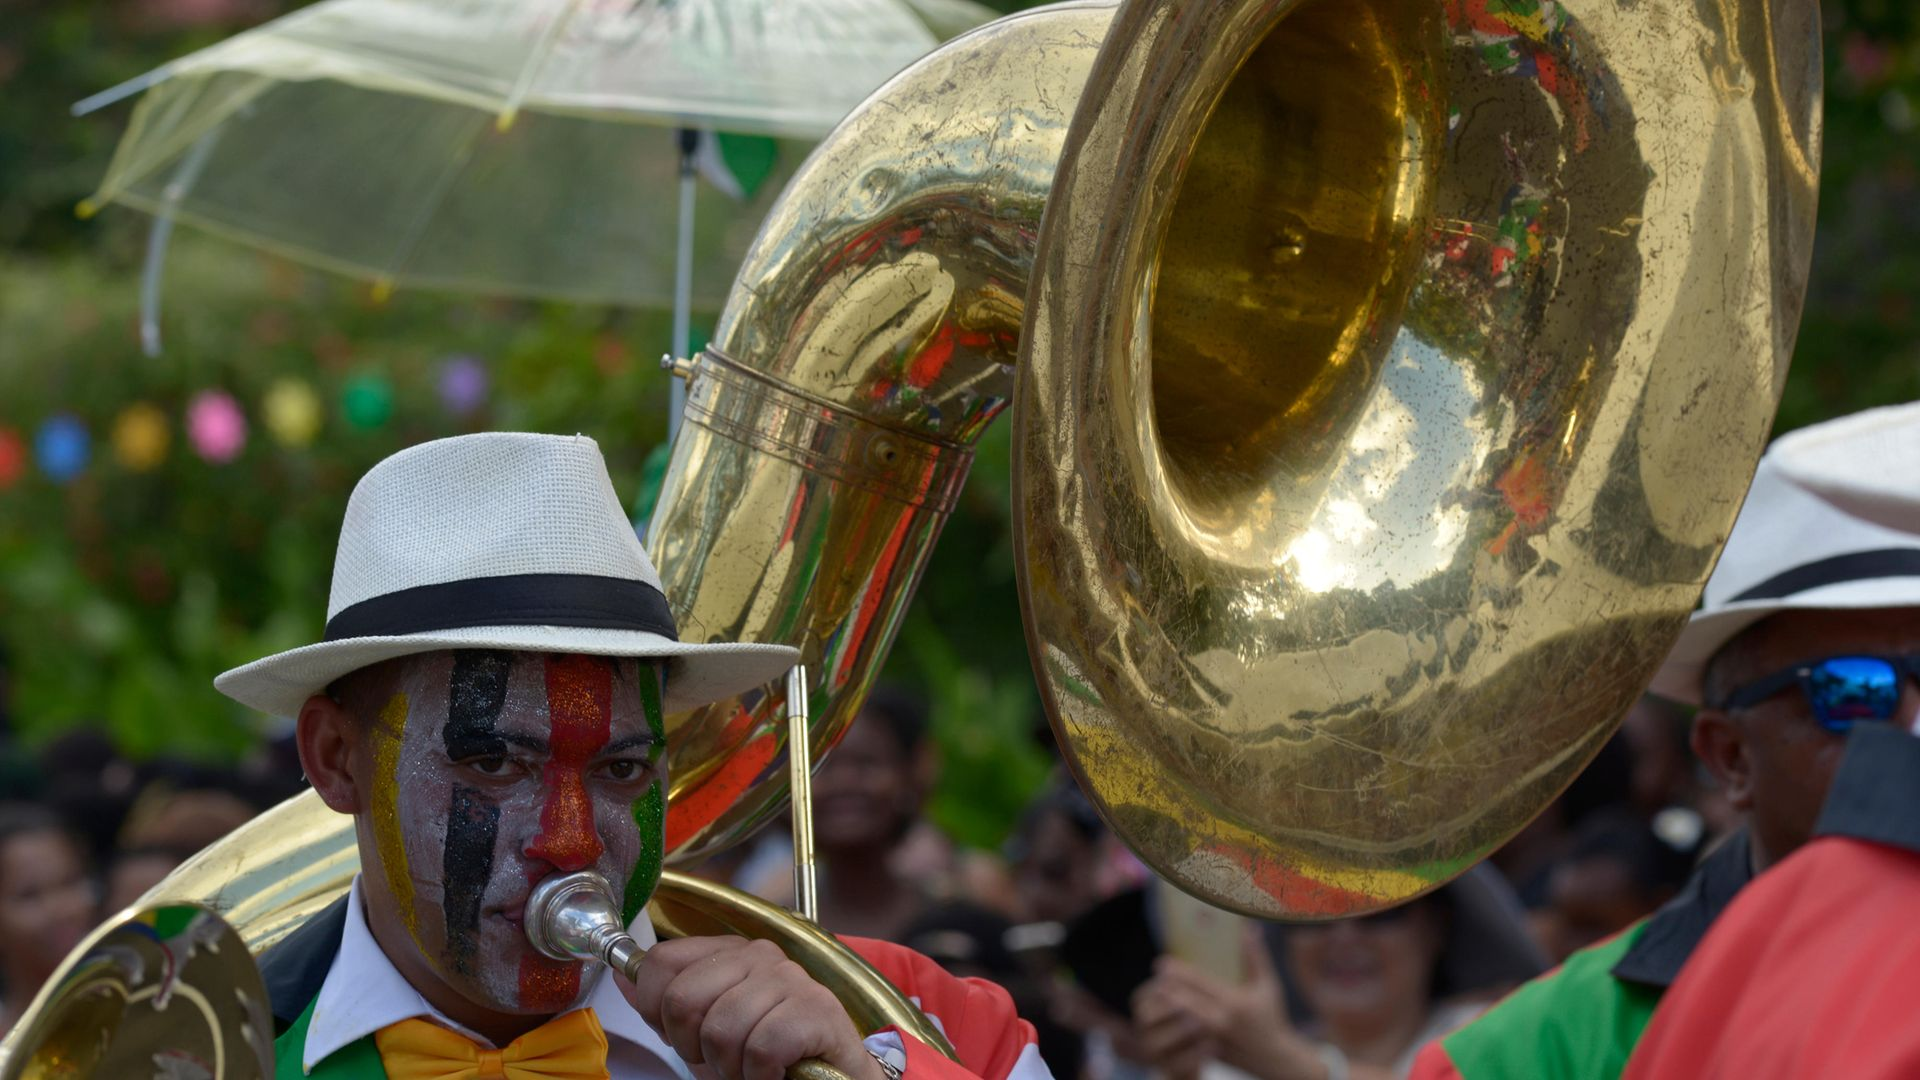 Man wearing a costume playing the tuba, parade at the International Carnival of Victoria, Seychelles. - Credit: De Agostini via Getty Images